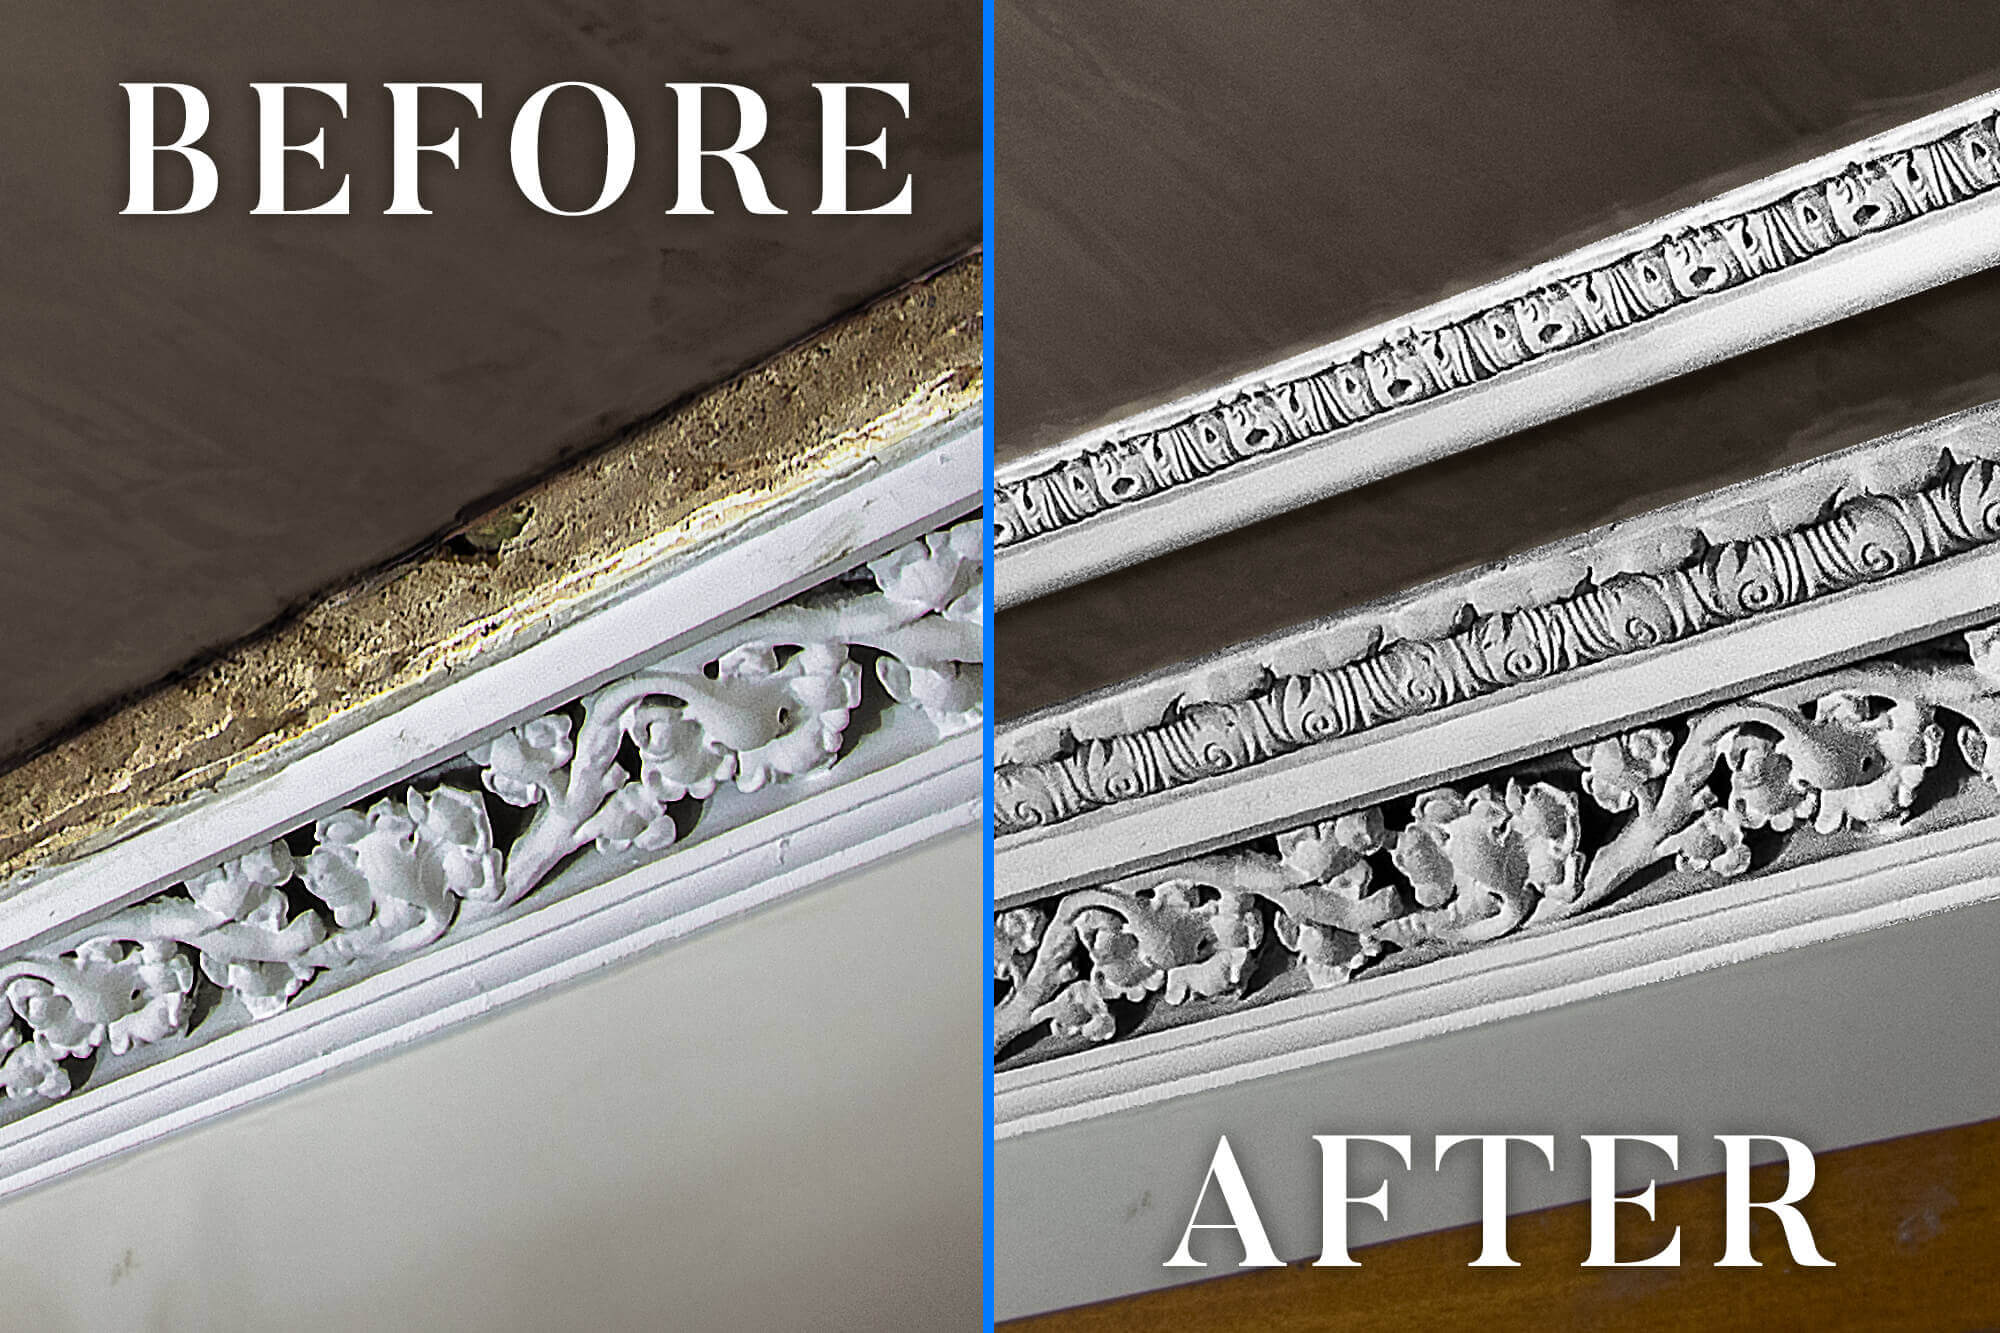 Before after image cornice repair and restoration in Lanarkshire, Scotland